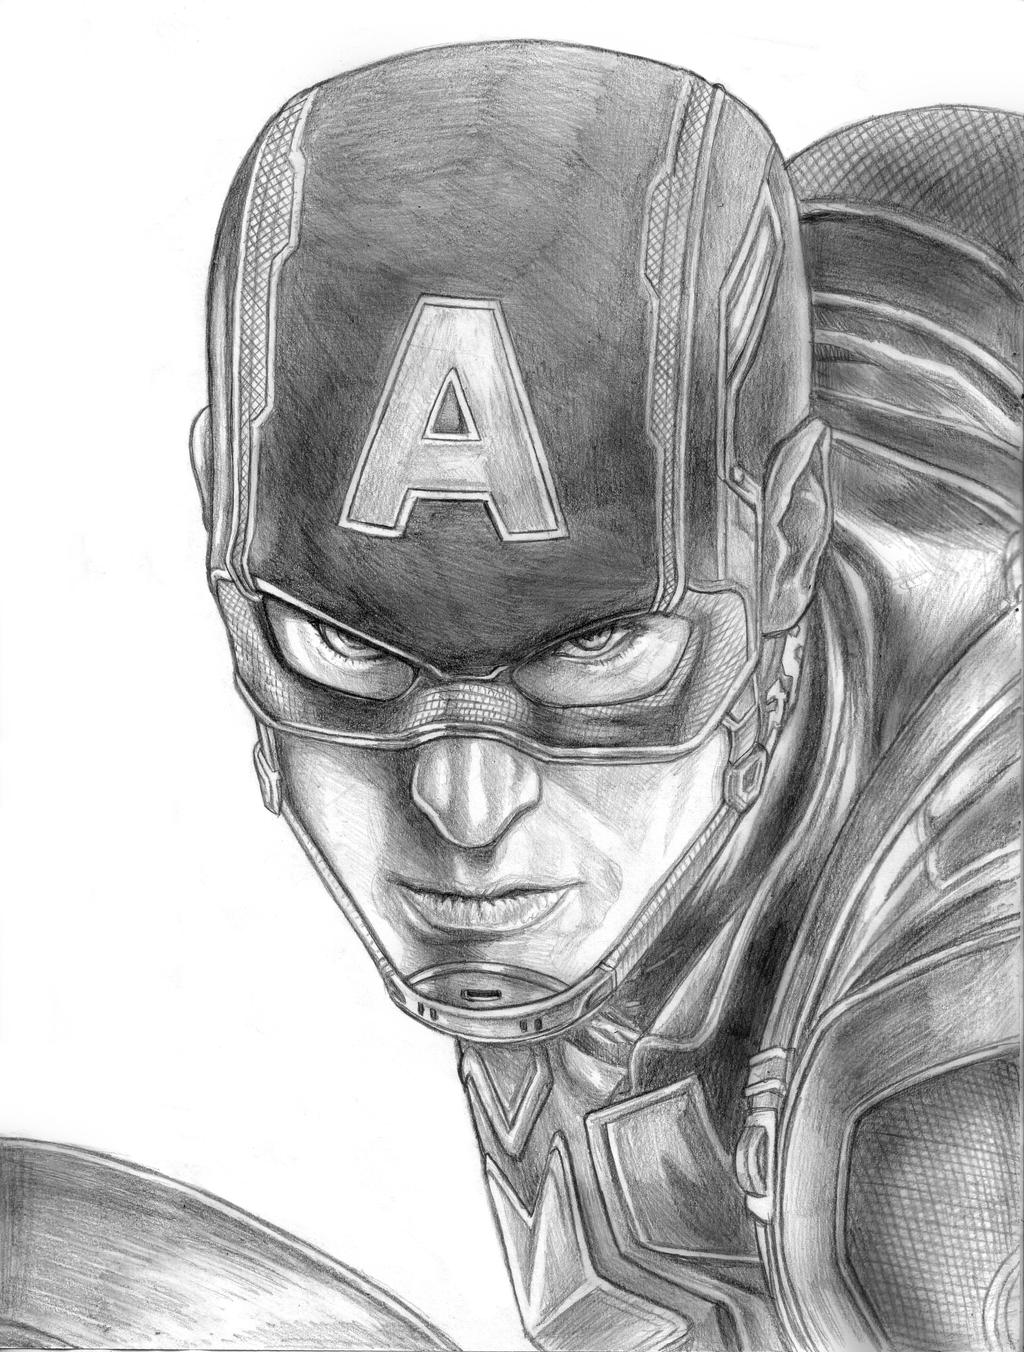 Avengers Age Of Ultron By Iloegbunam On Deviantart: Captain America (Avengers